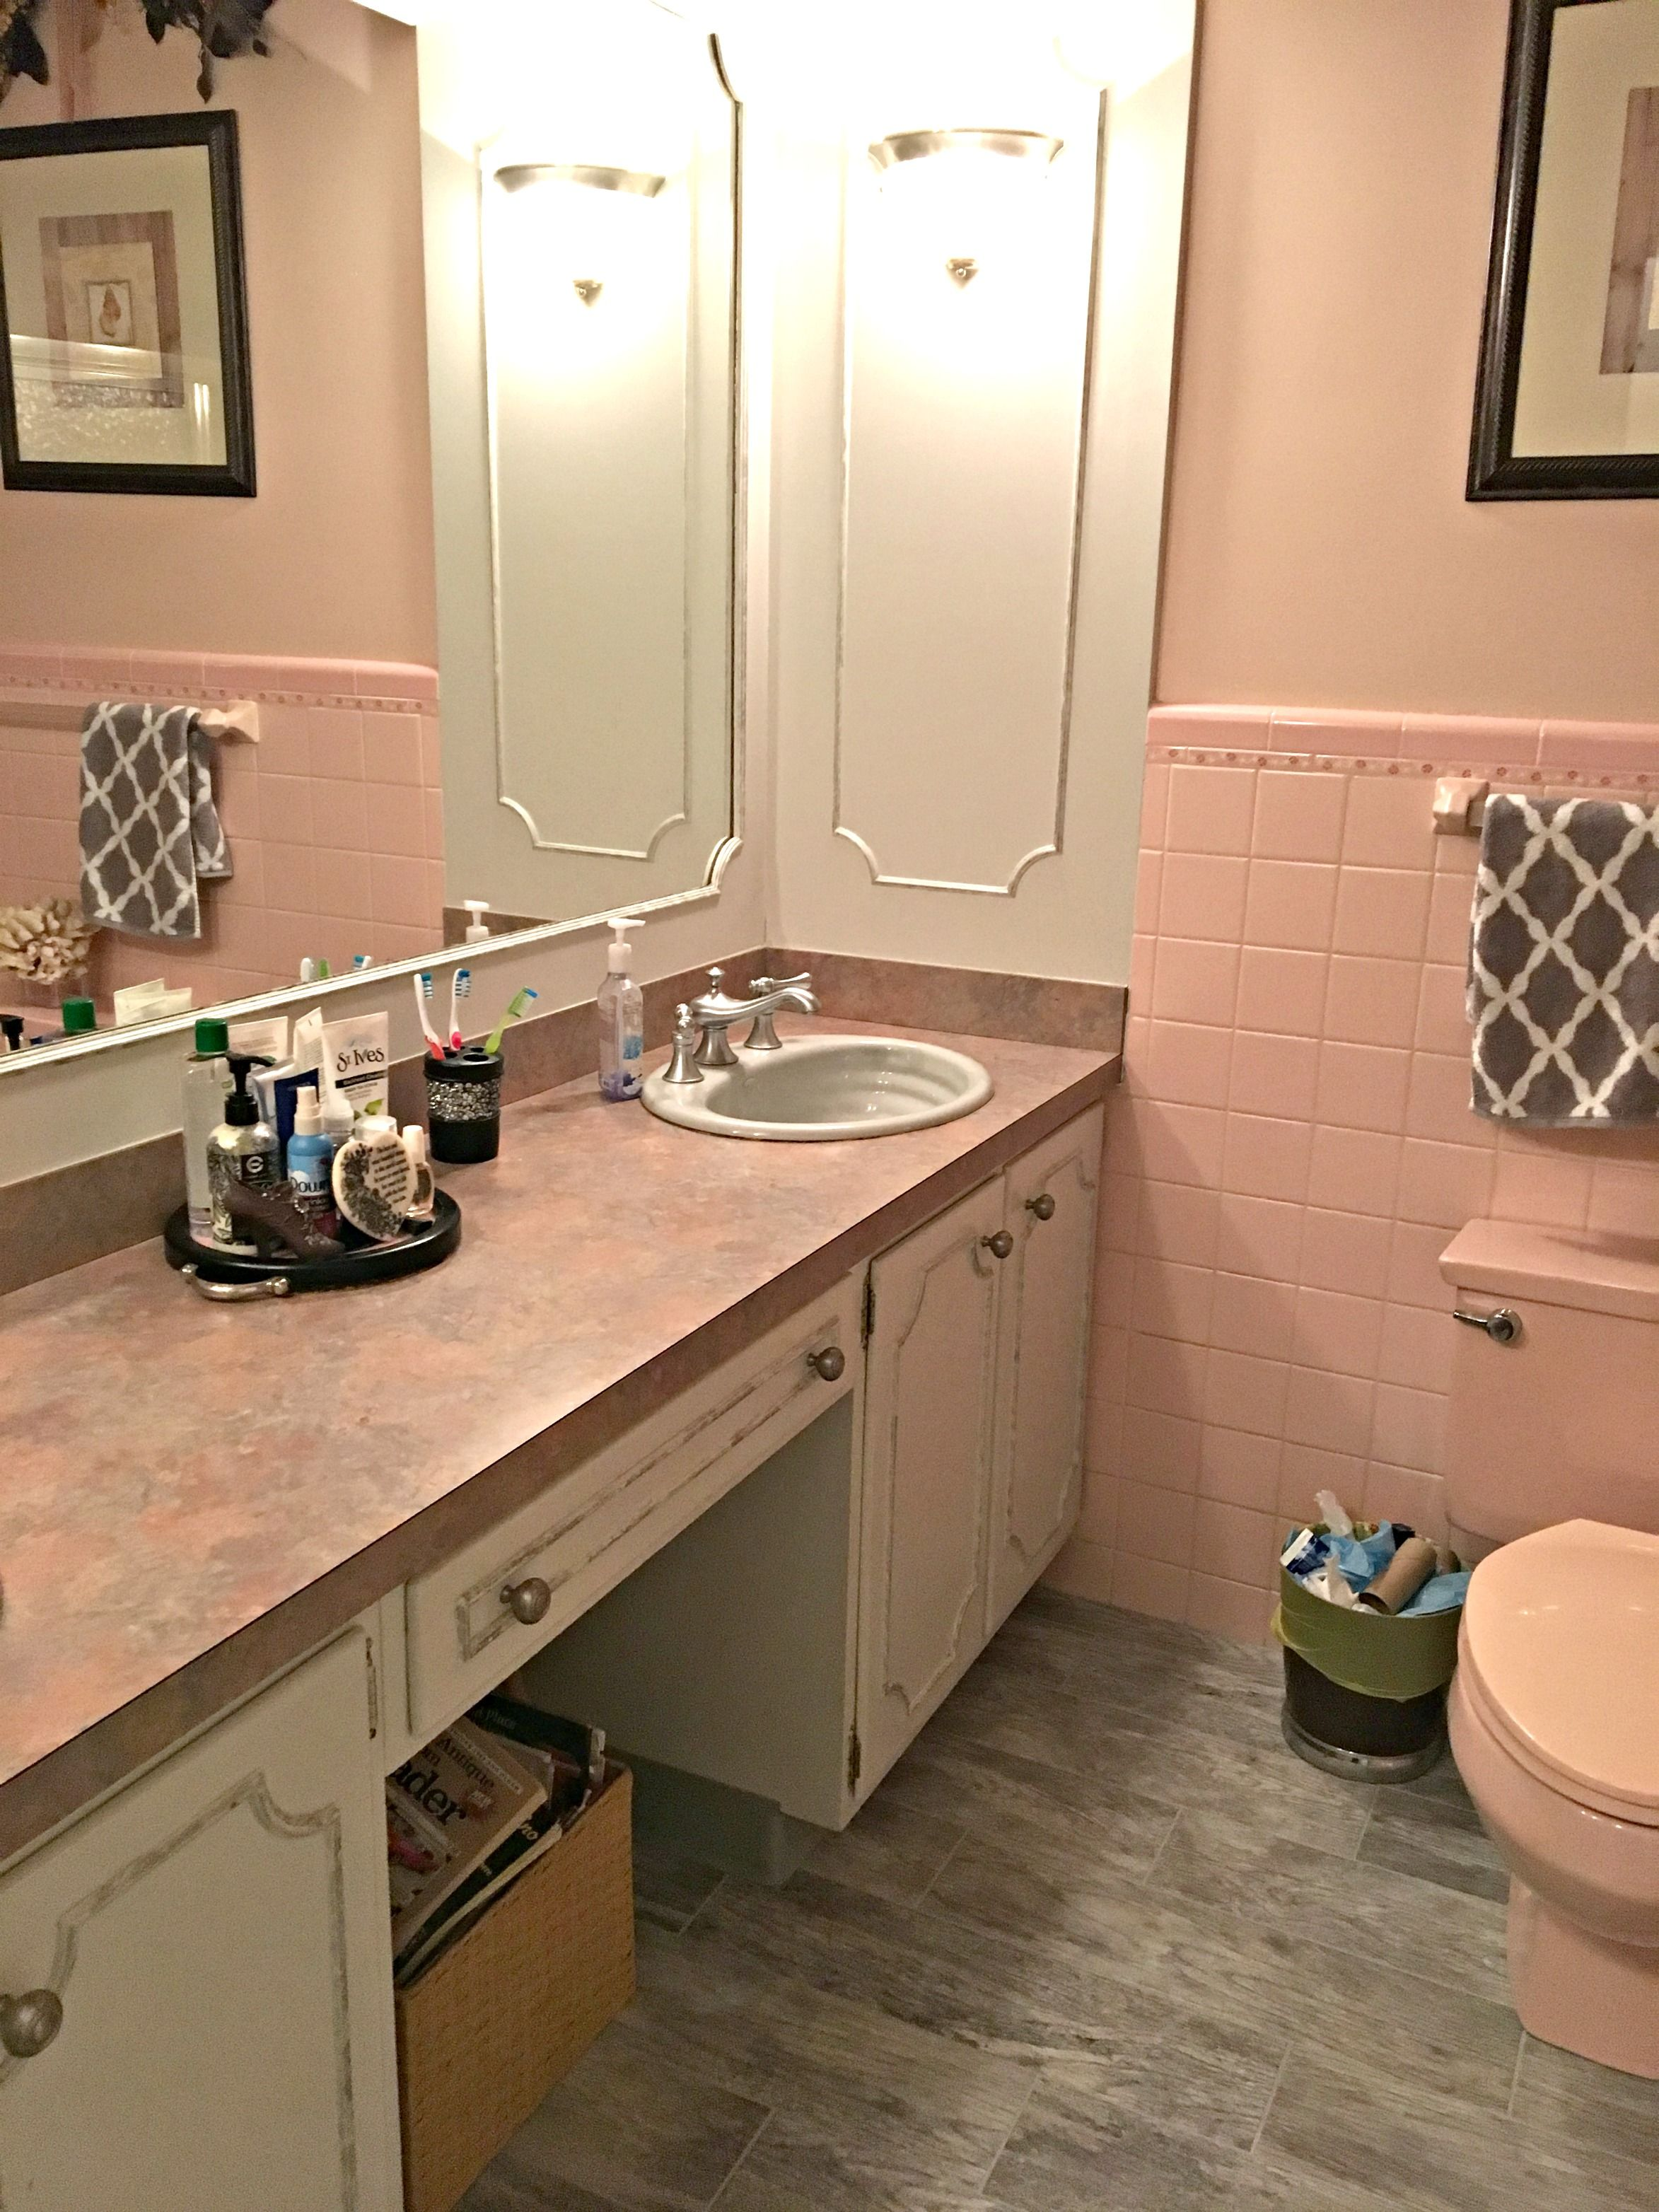 The Best Paint Colours To Update A Pink Or Dusty Rose Room Pink Bathroom Pink Bathroom Tiles Black And White Tiles Bathroom